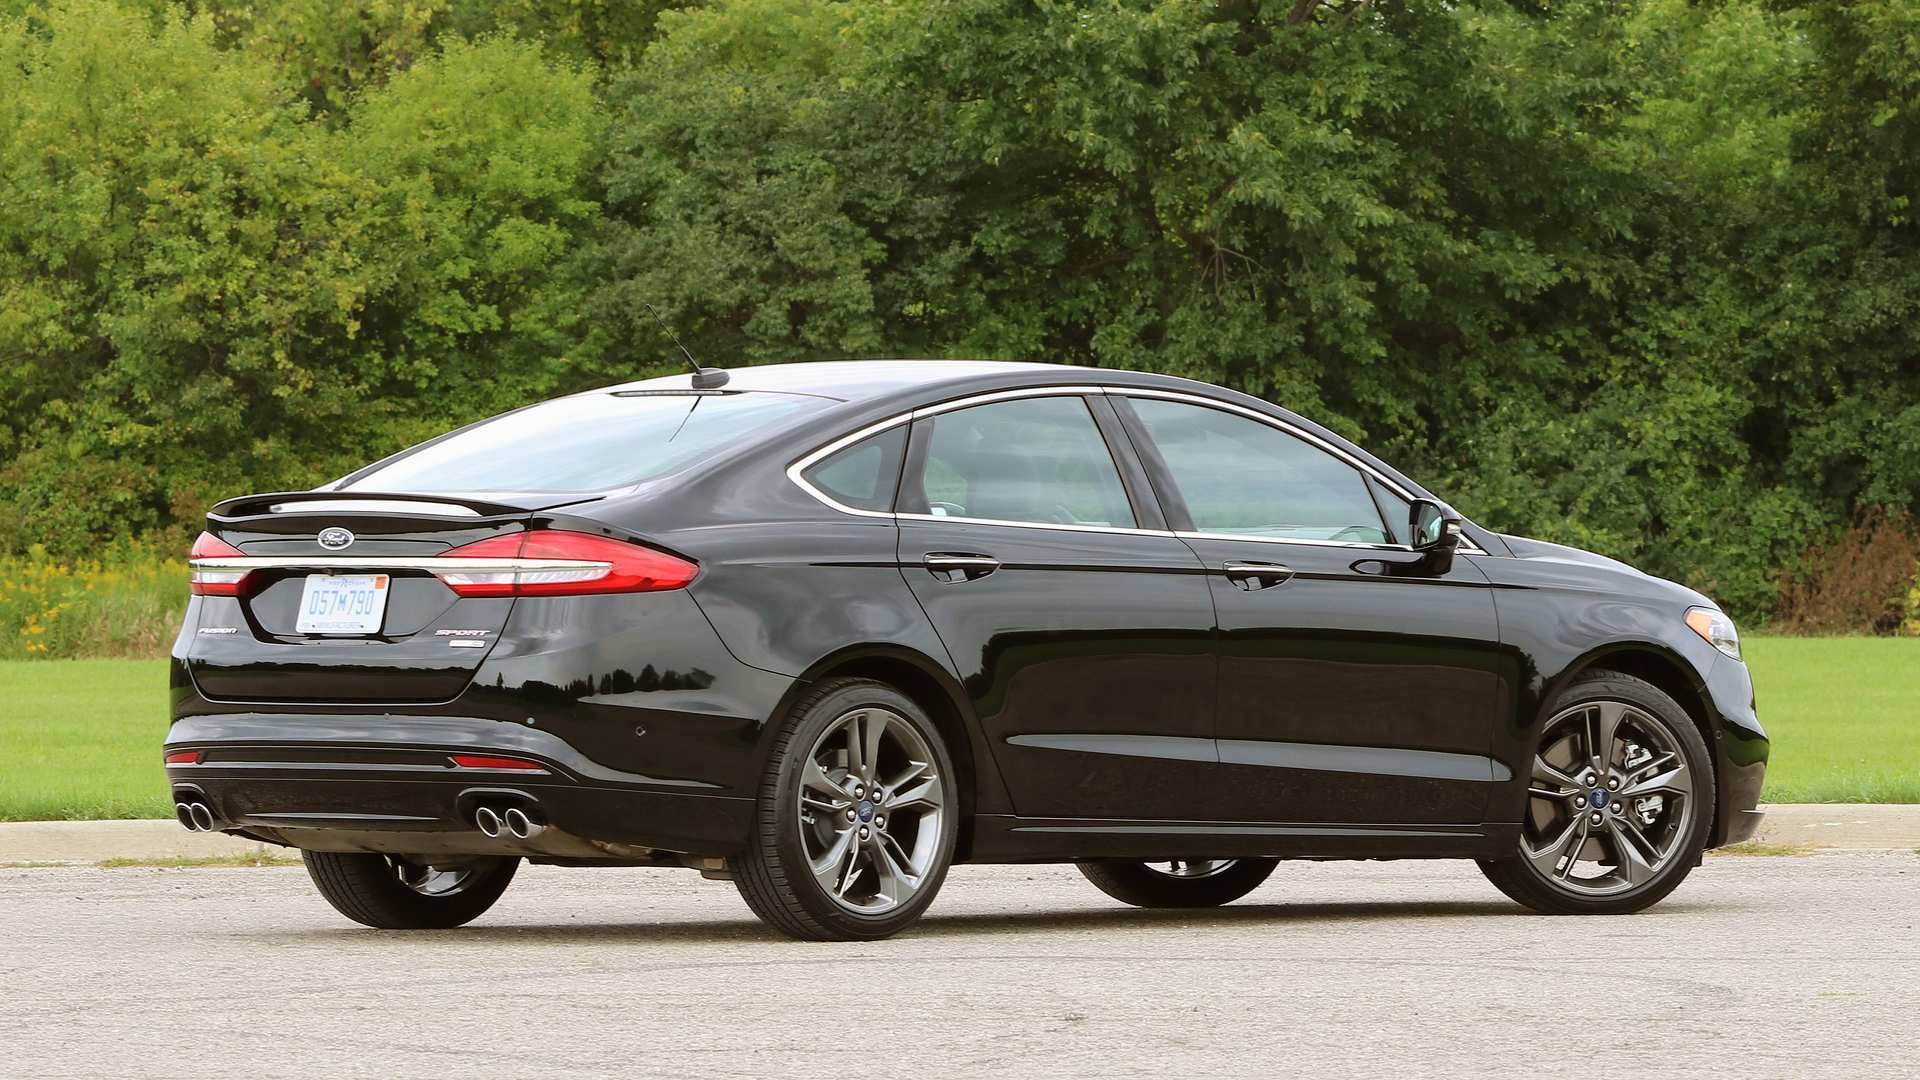 44 Gallery of 2020 Ford Mondeo Images for 2020 Ford Mondeo